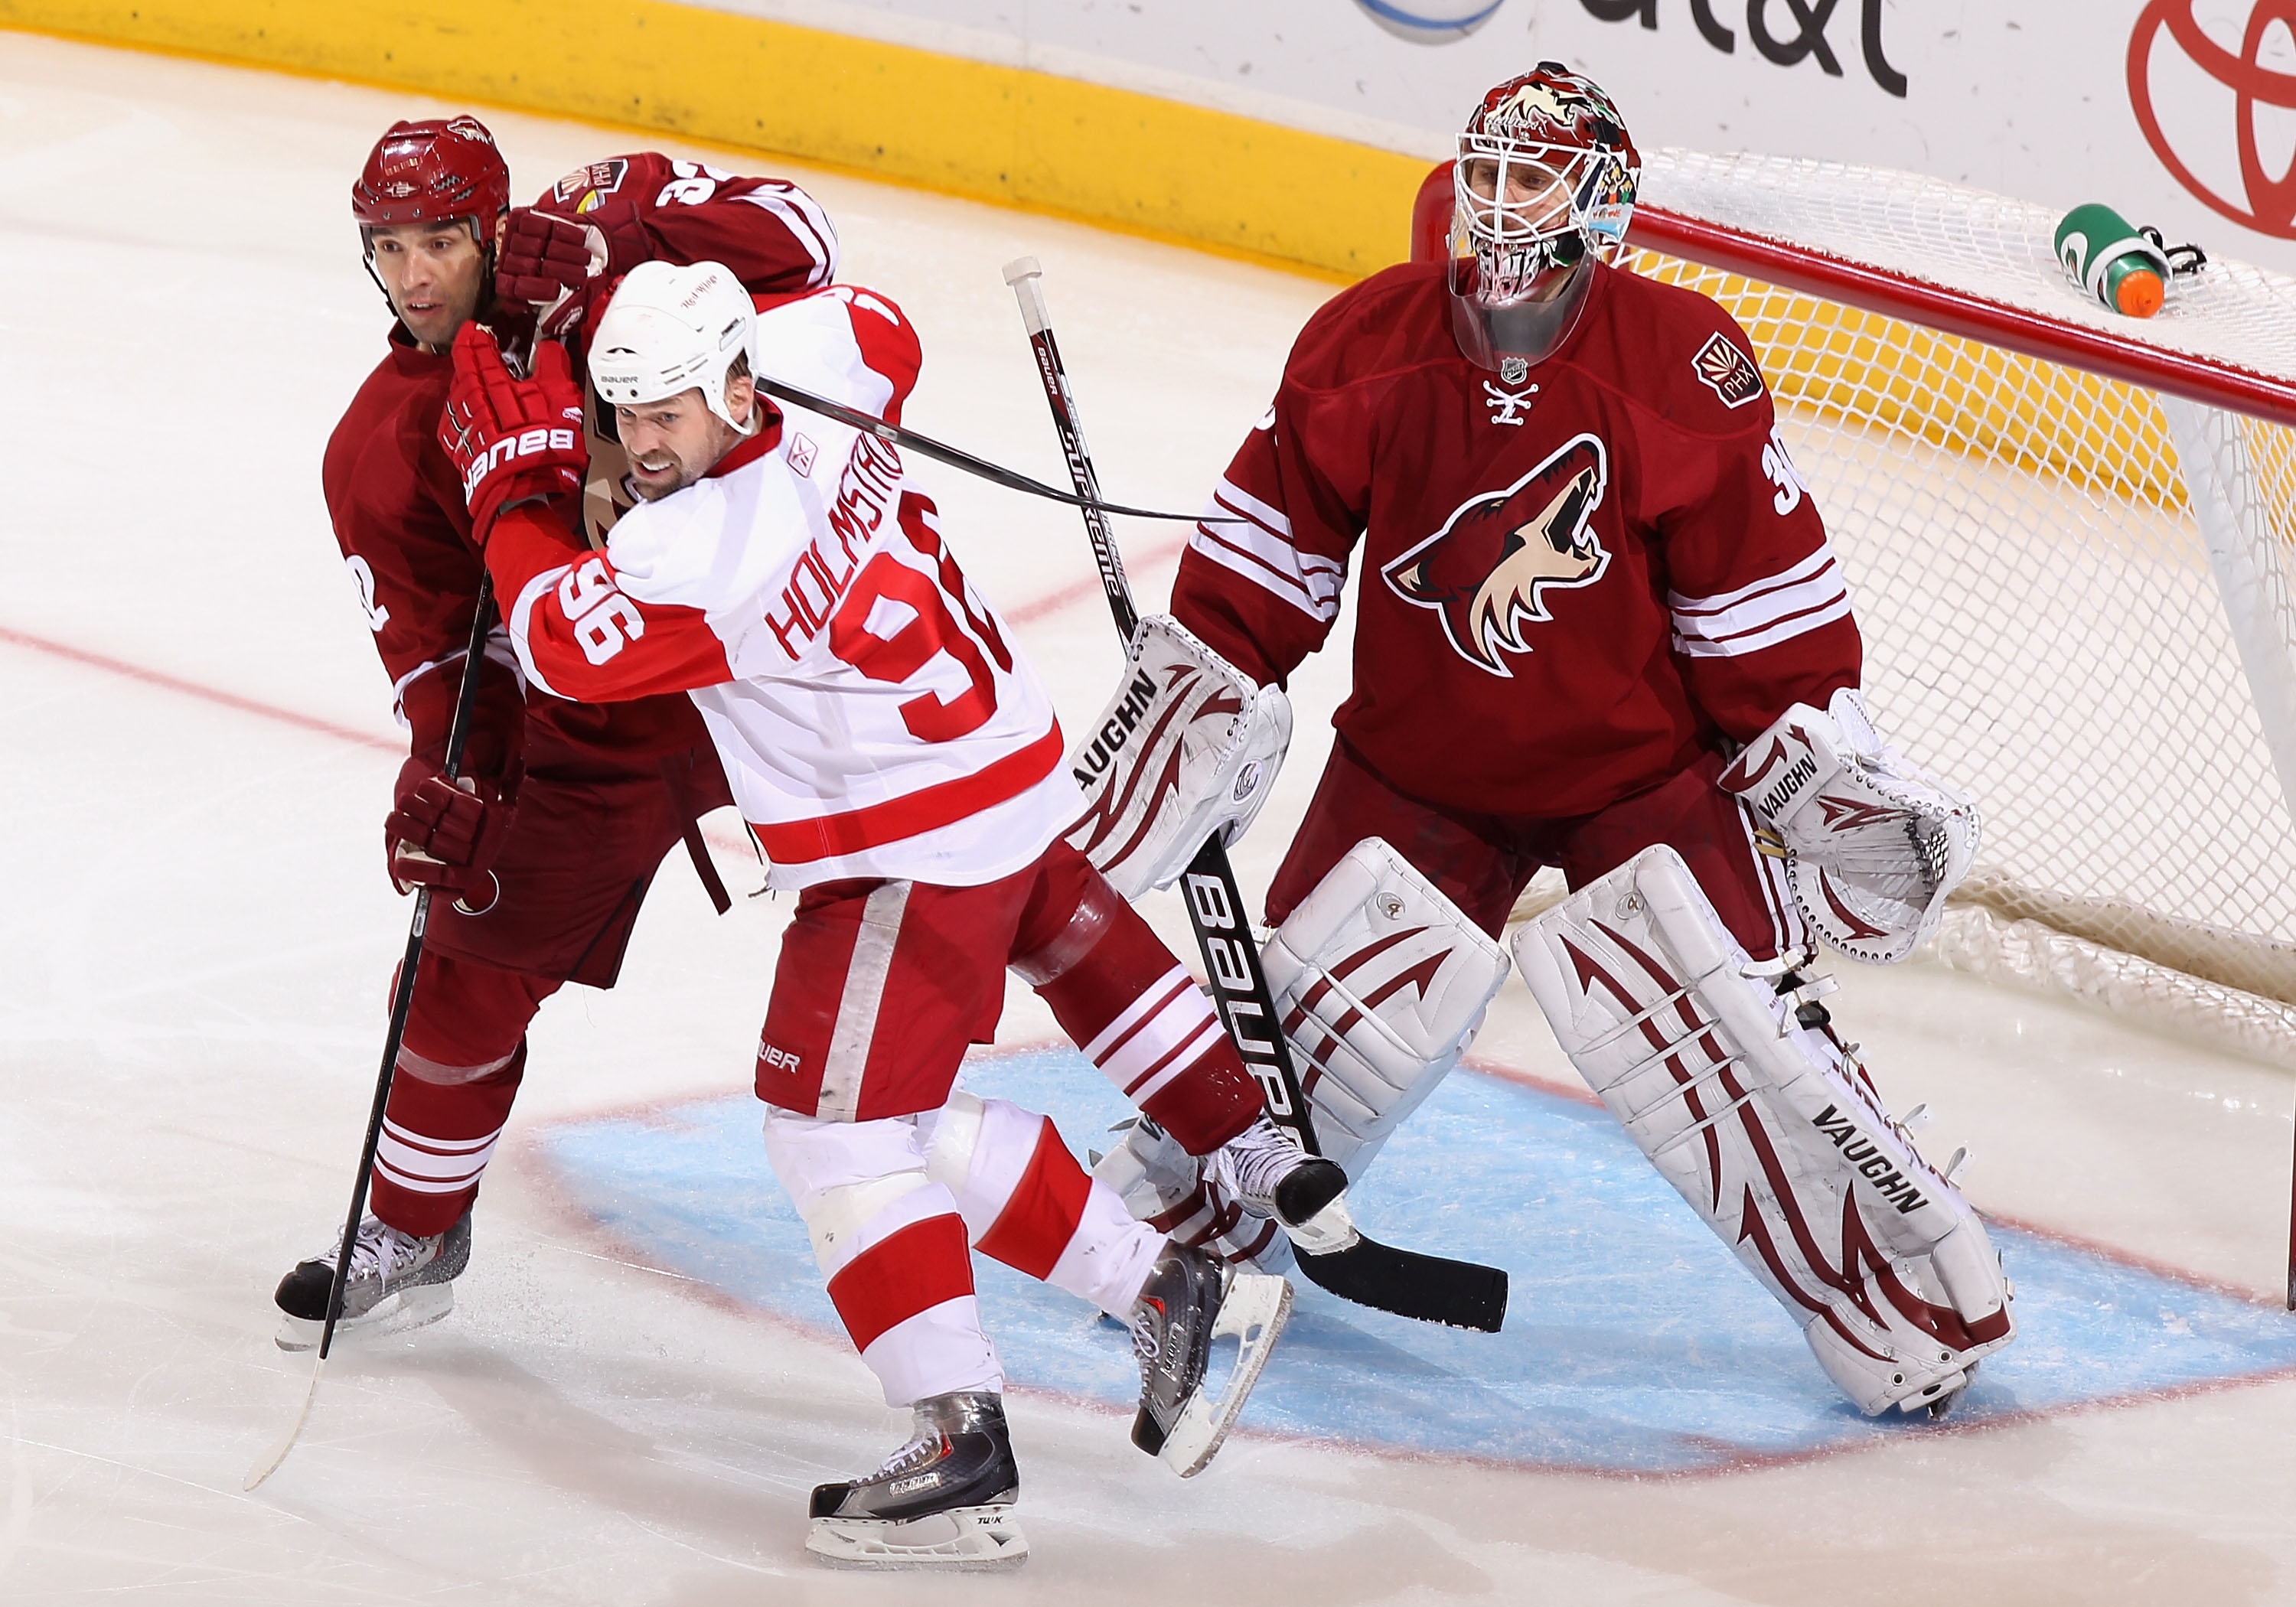 GLENDALE, AZ - MARCH 05:  Tomas Holmstrom #96 of the Detroit Red Wings sets up in front of goaltender Ilya Bryzgalov #30 of the Phoenix Coyotes during the NHL game at Jobing.com Arena on March 5, 2011 in Glendale, Arizona. The Coyotes defeated the Red Win